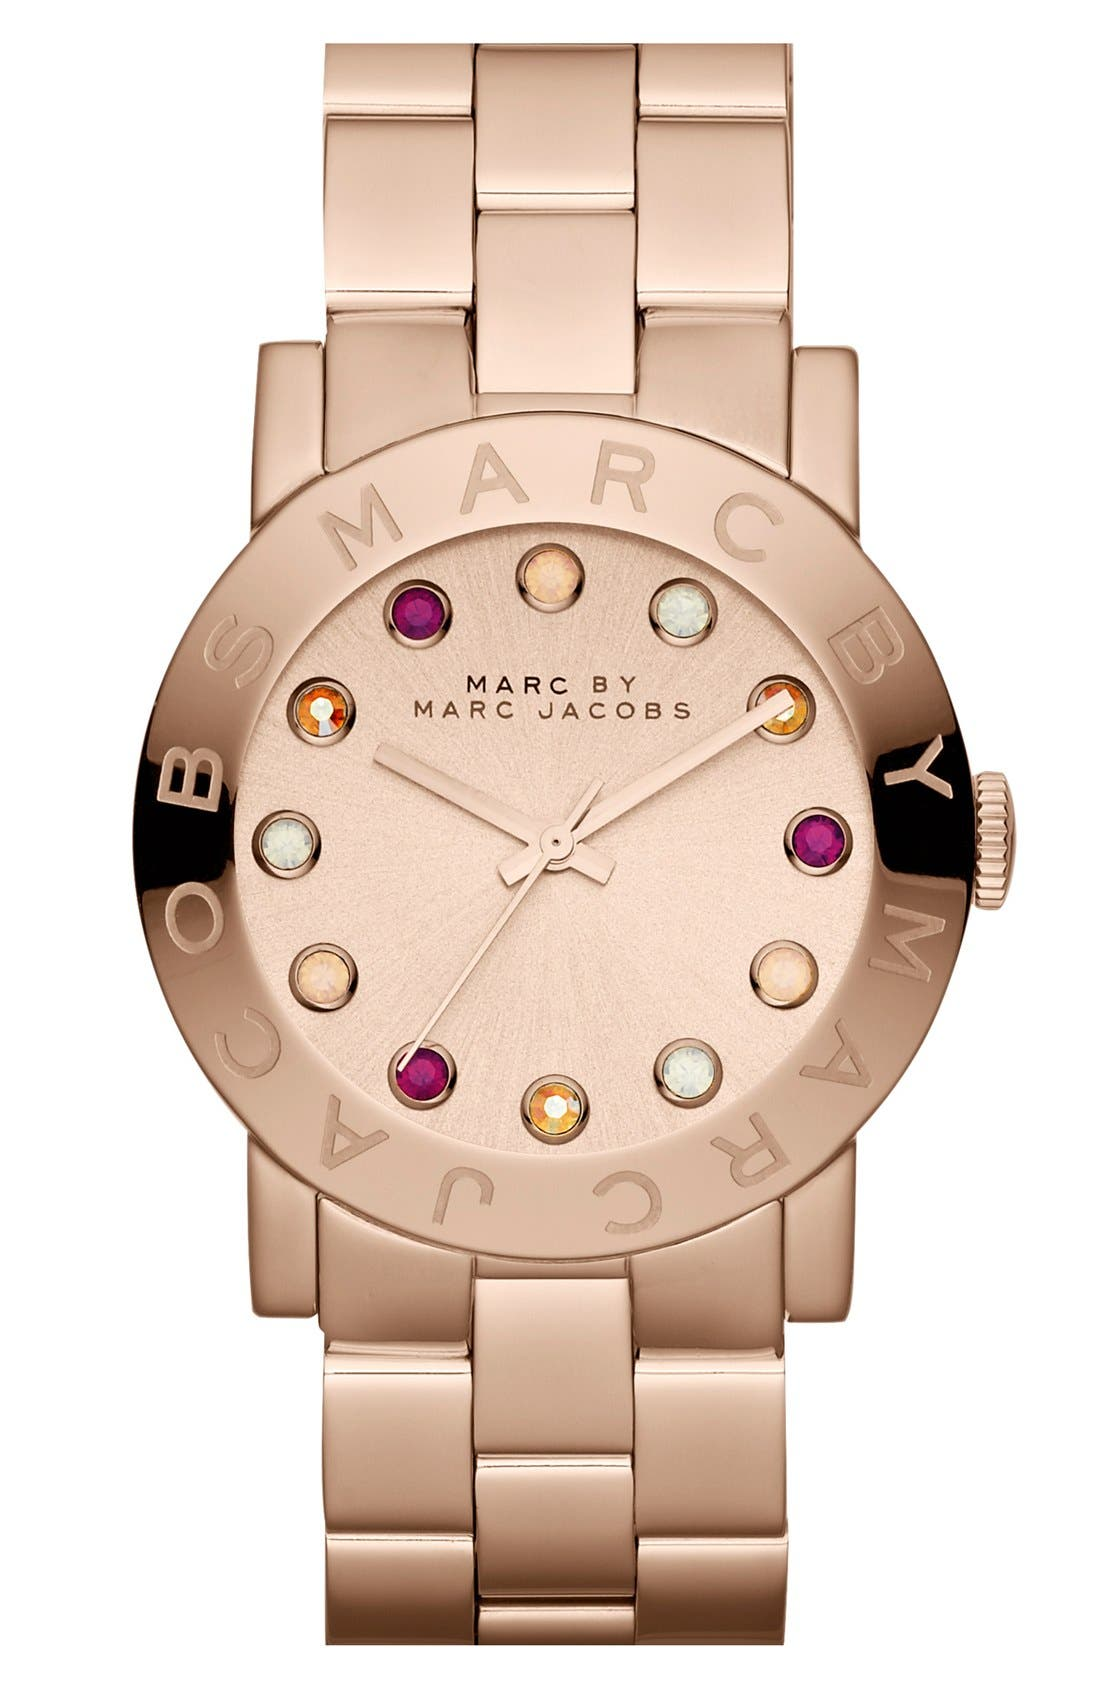 Main Image - MARC JACOBS 'Amy' Bracelet Watch, 37mm